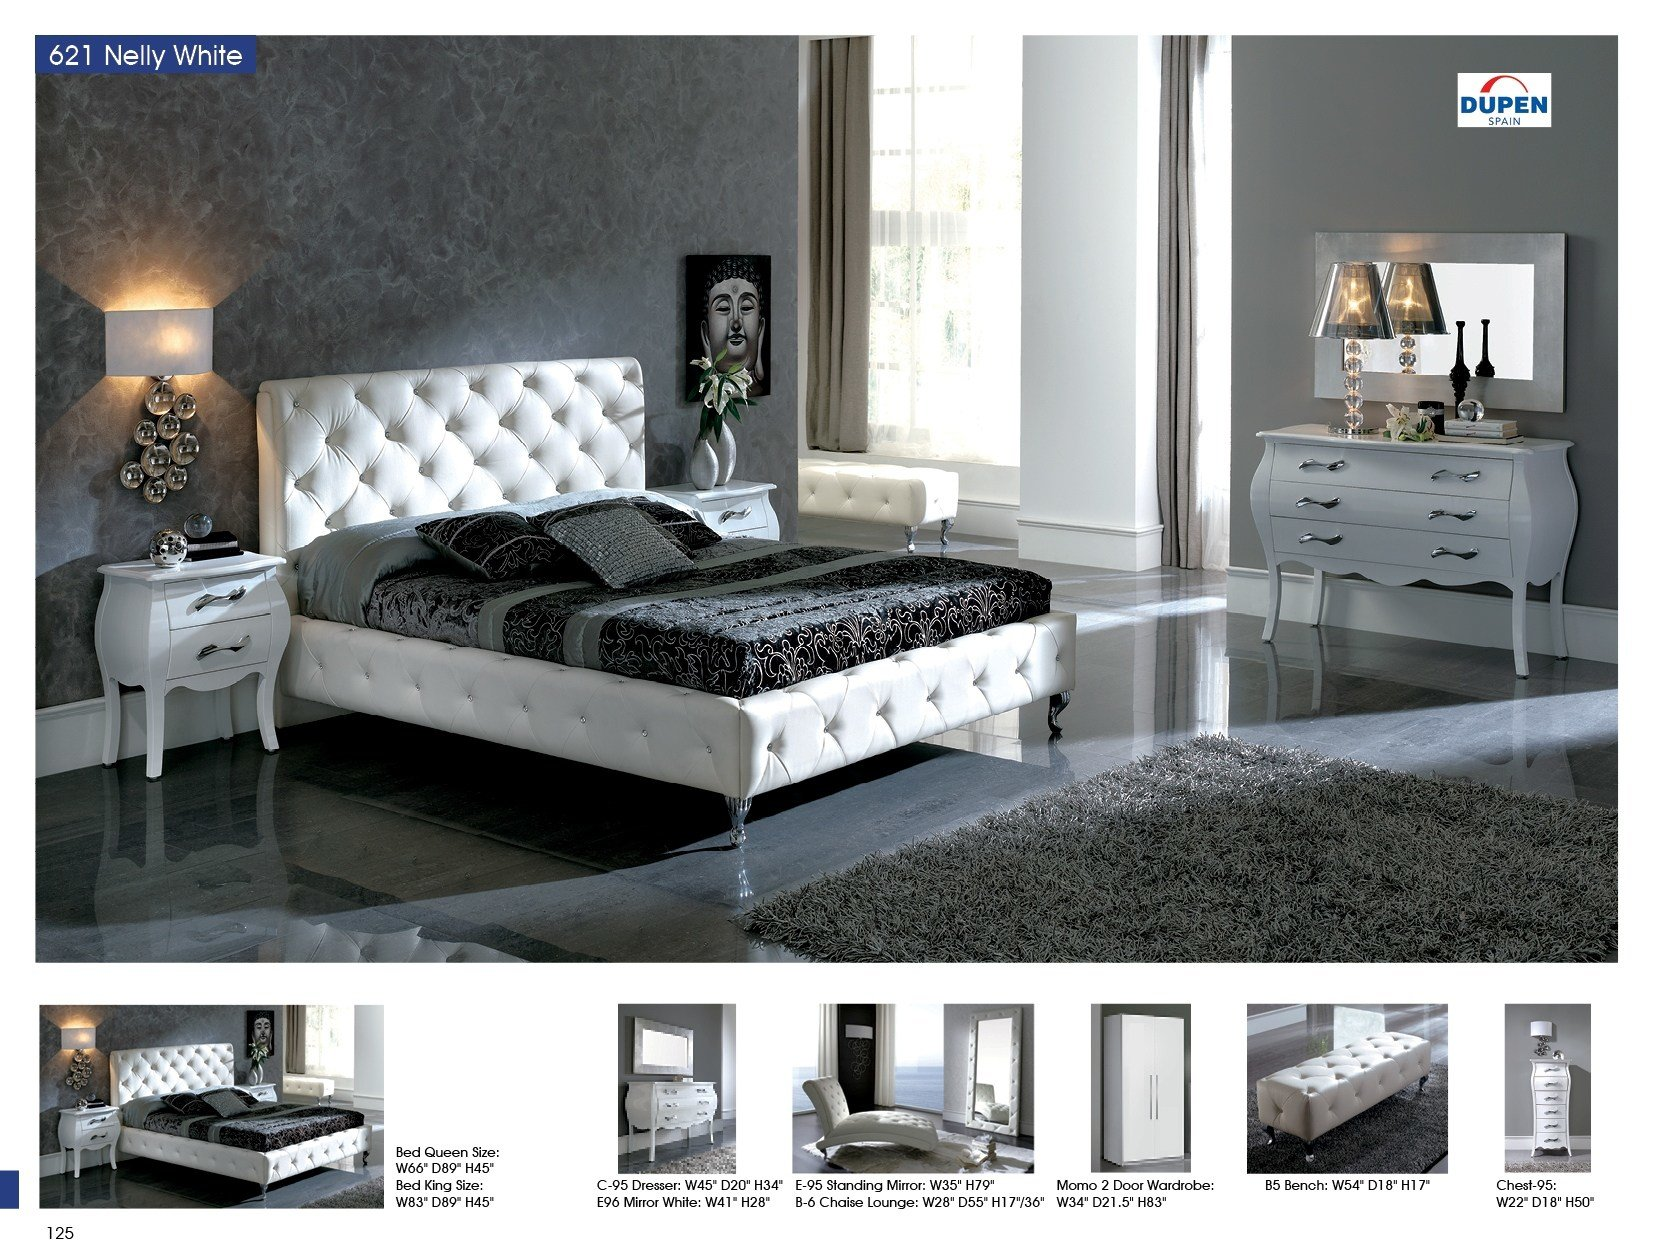 Best Nelly 621 White M95 C95 E96 B5 S95 Modern Bedrooms With Pictures